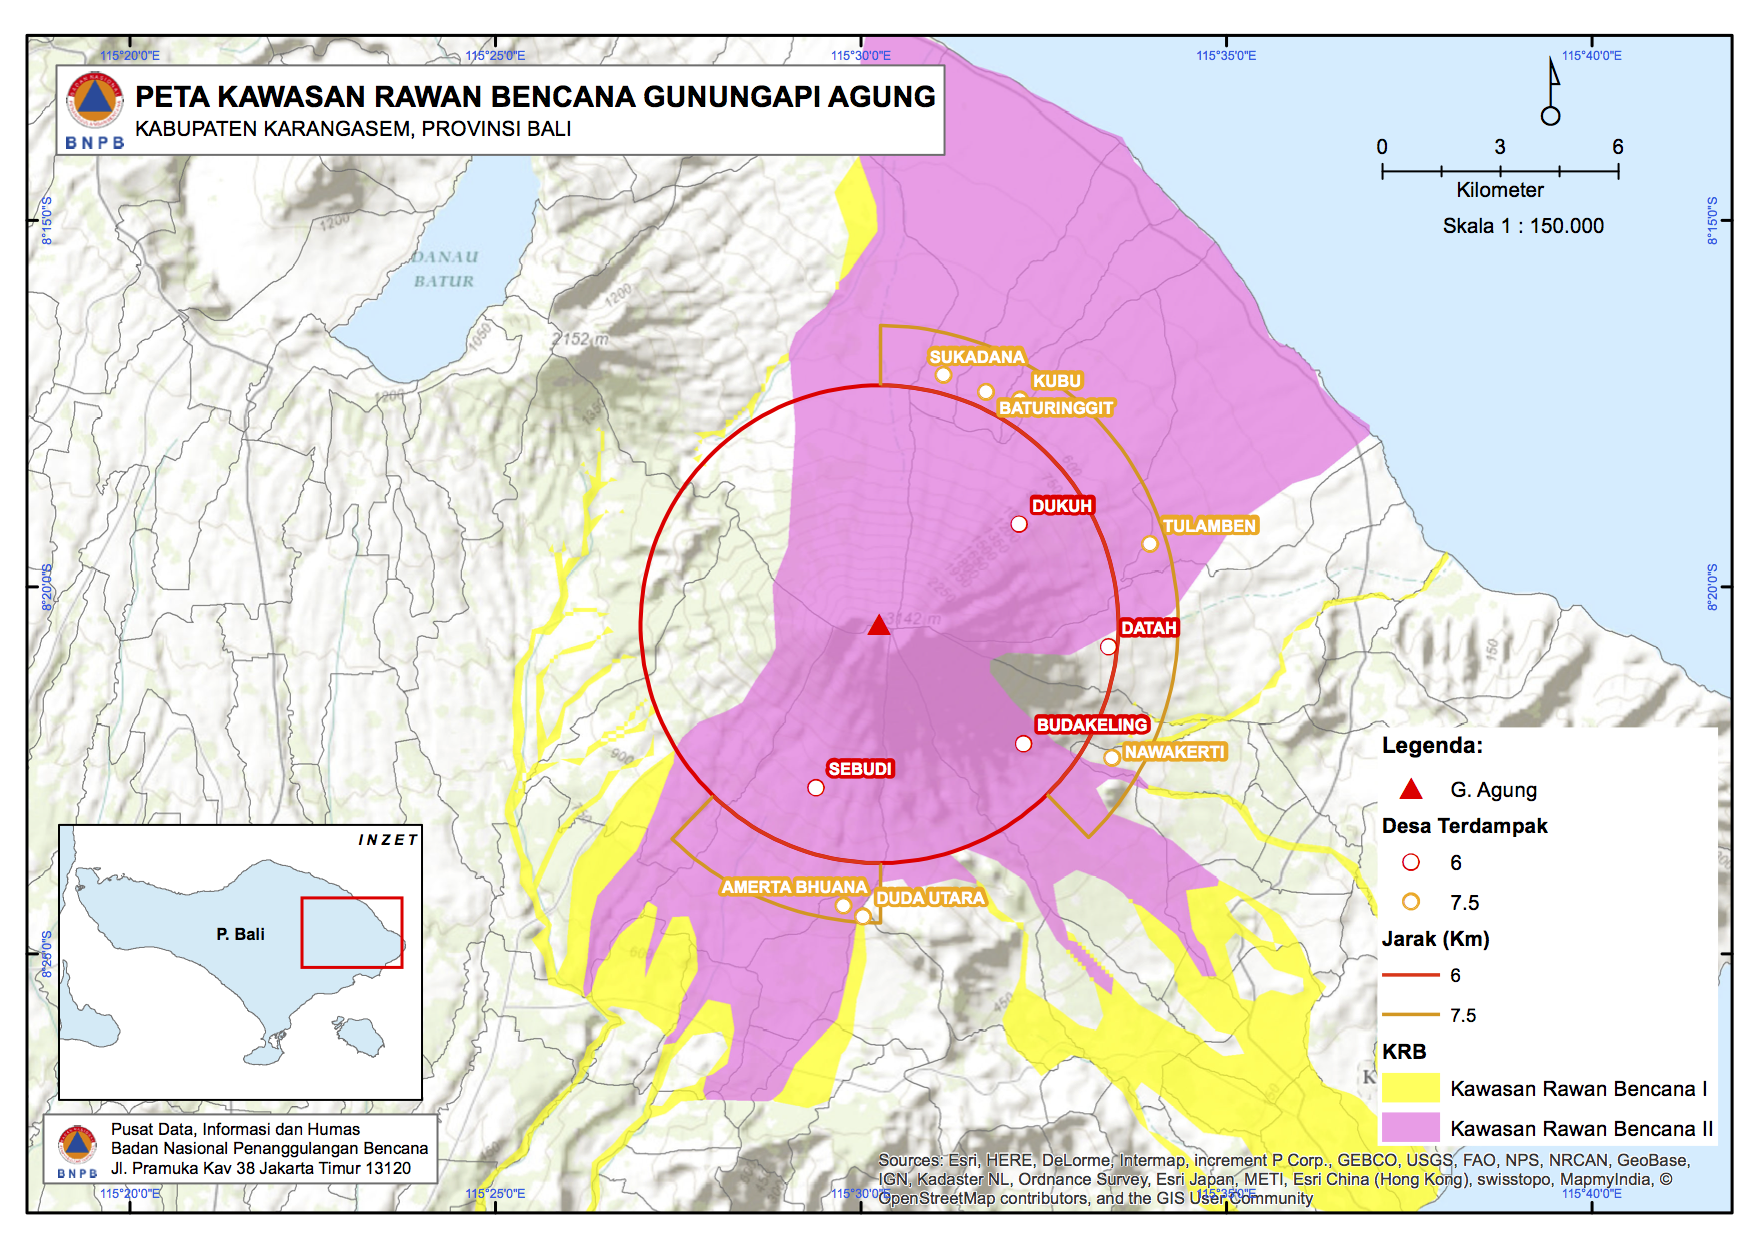 Mount Agung Hazard Map by Indonesian National Board for Disaster Management.